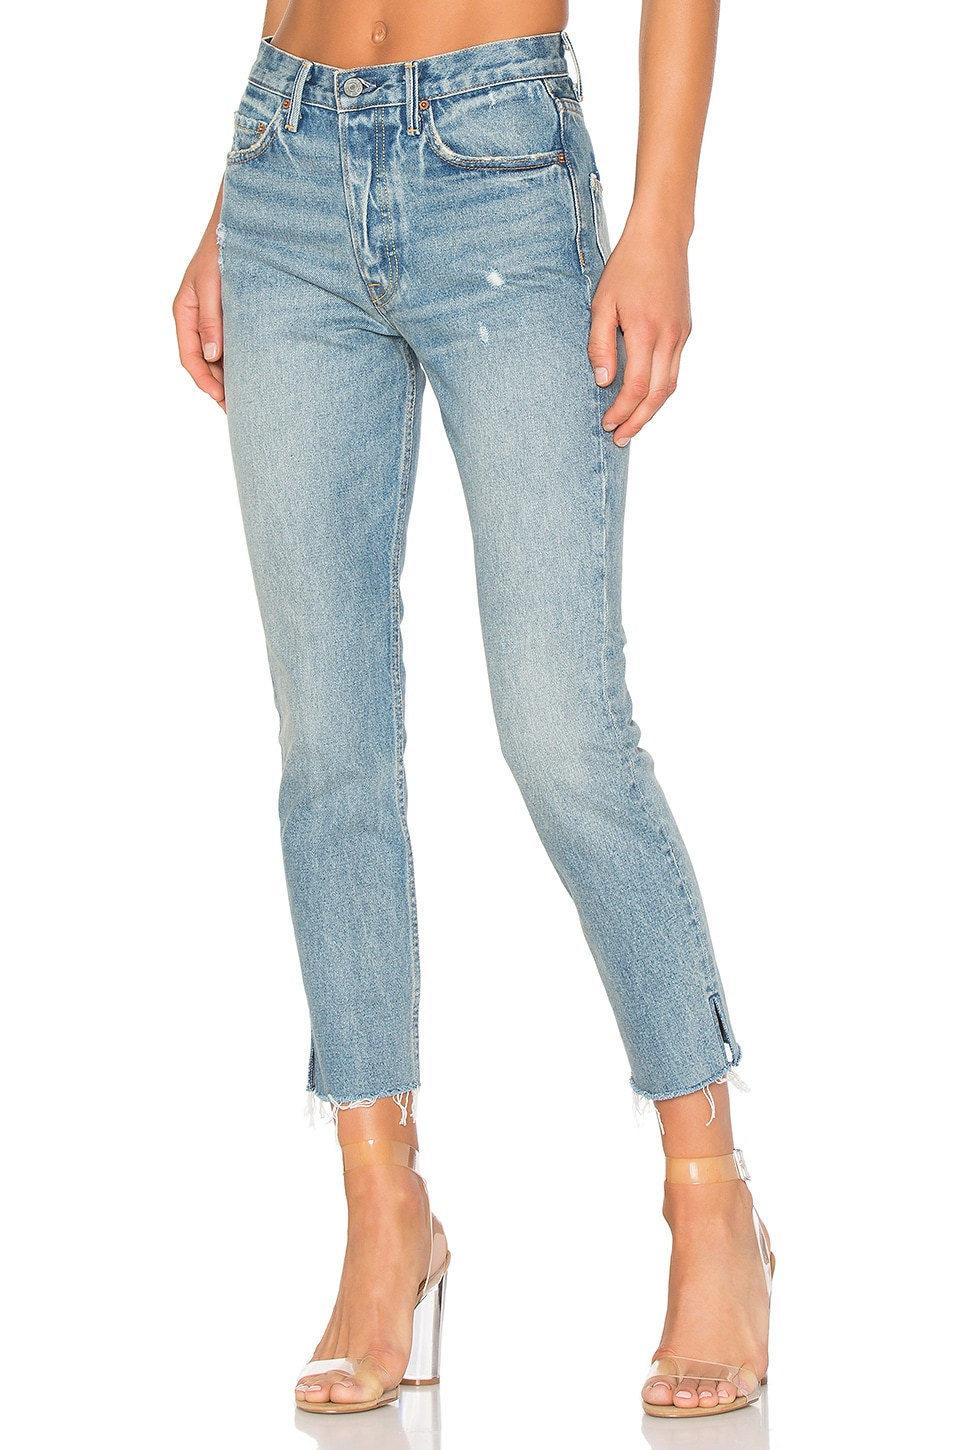 GRLFRND PETITE Karolina High-Rise Skinny Jean in Without Love